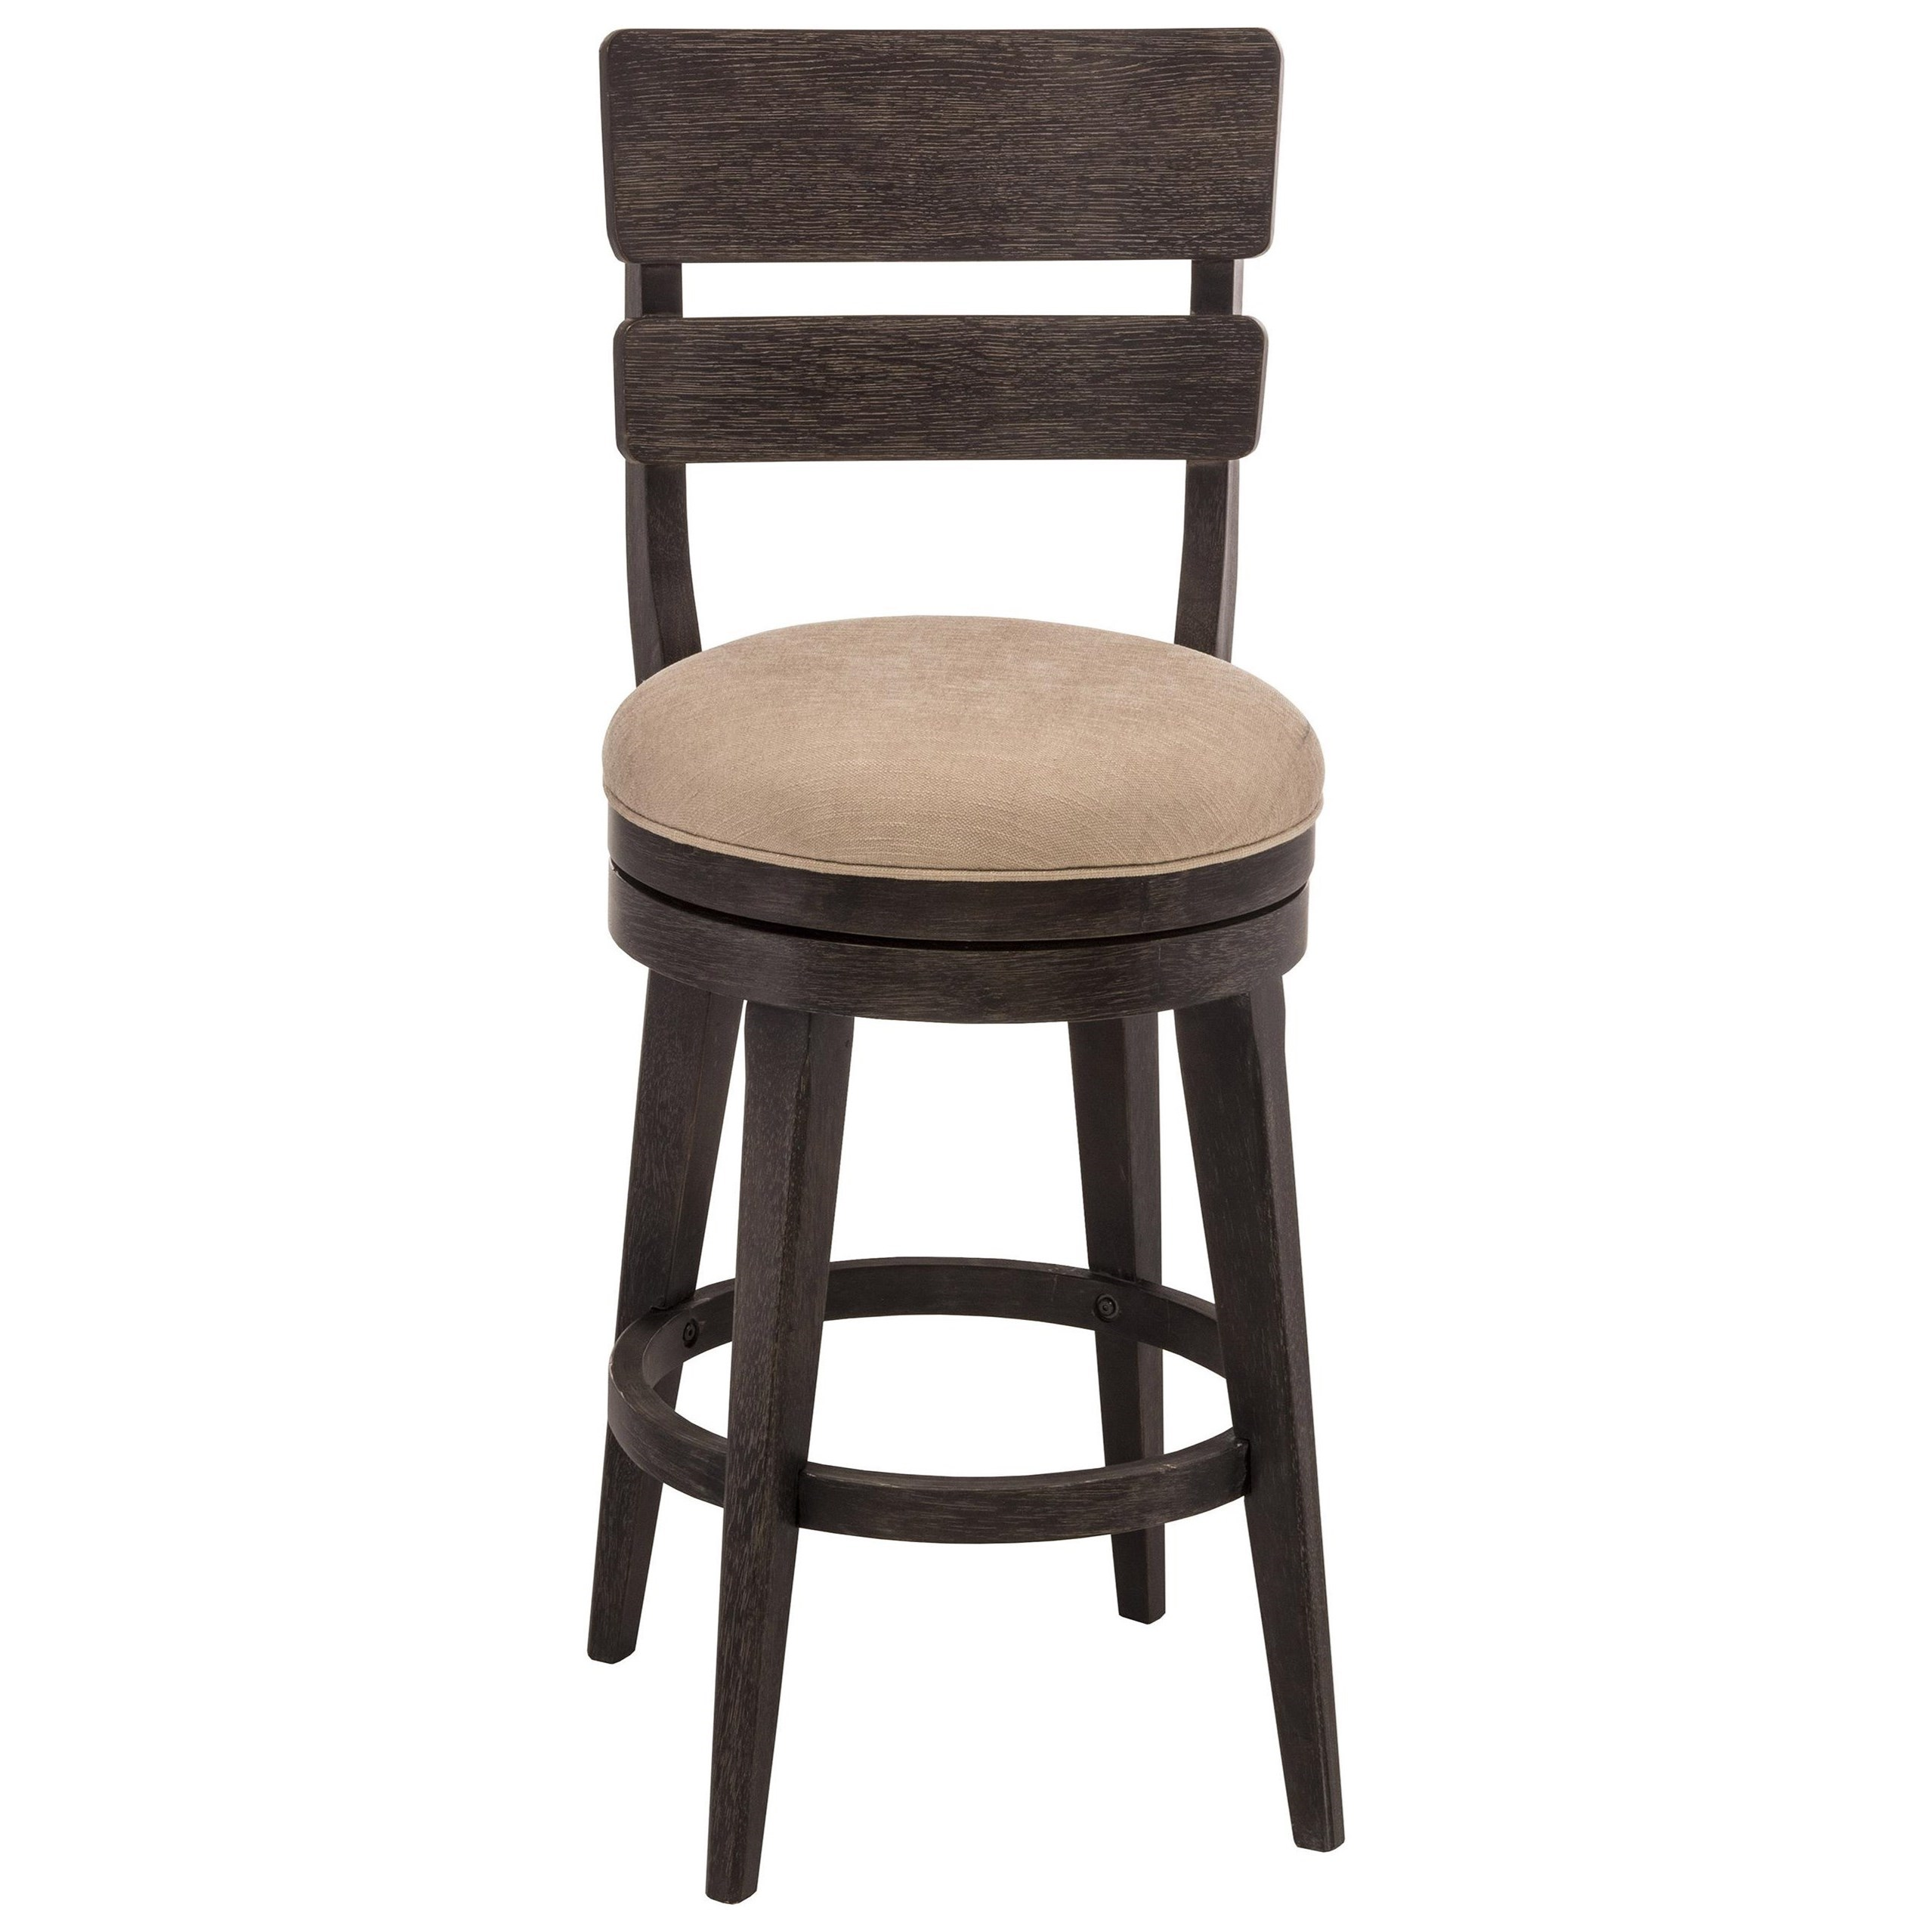 Hillsdale wood stools upholstered swivel counter